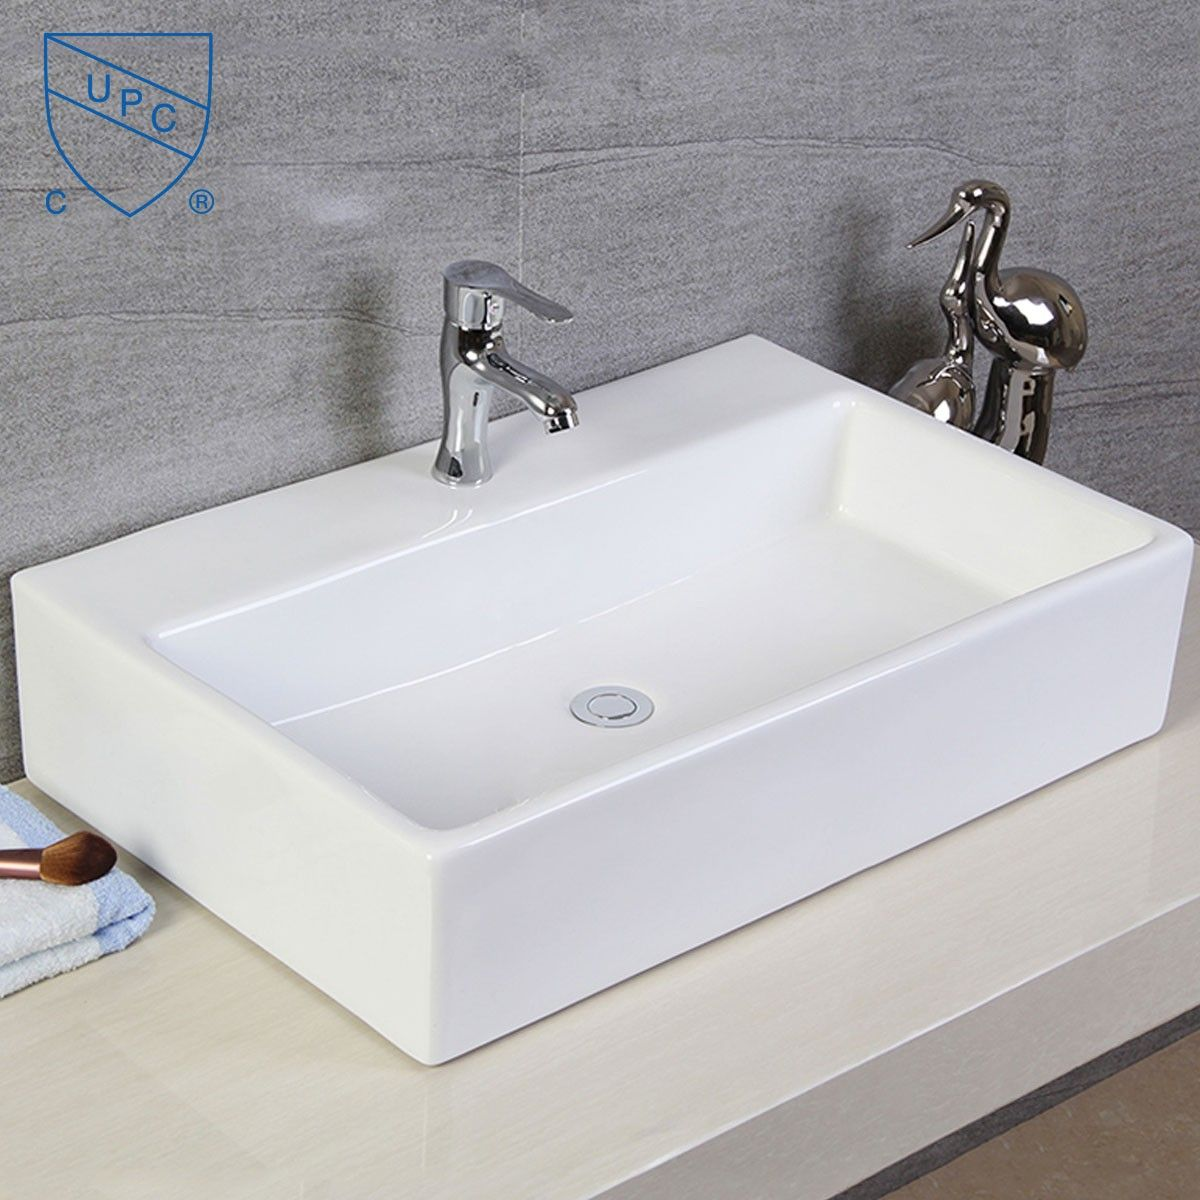 Decoraport Lavabo-Vasque Rectangle de Dessus de Comptoir en Céramique Blanche (CL-1099)